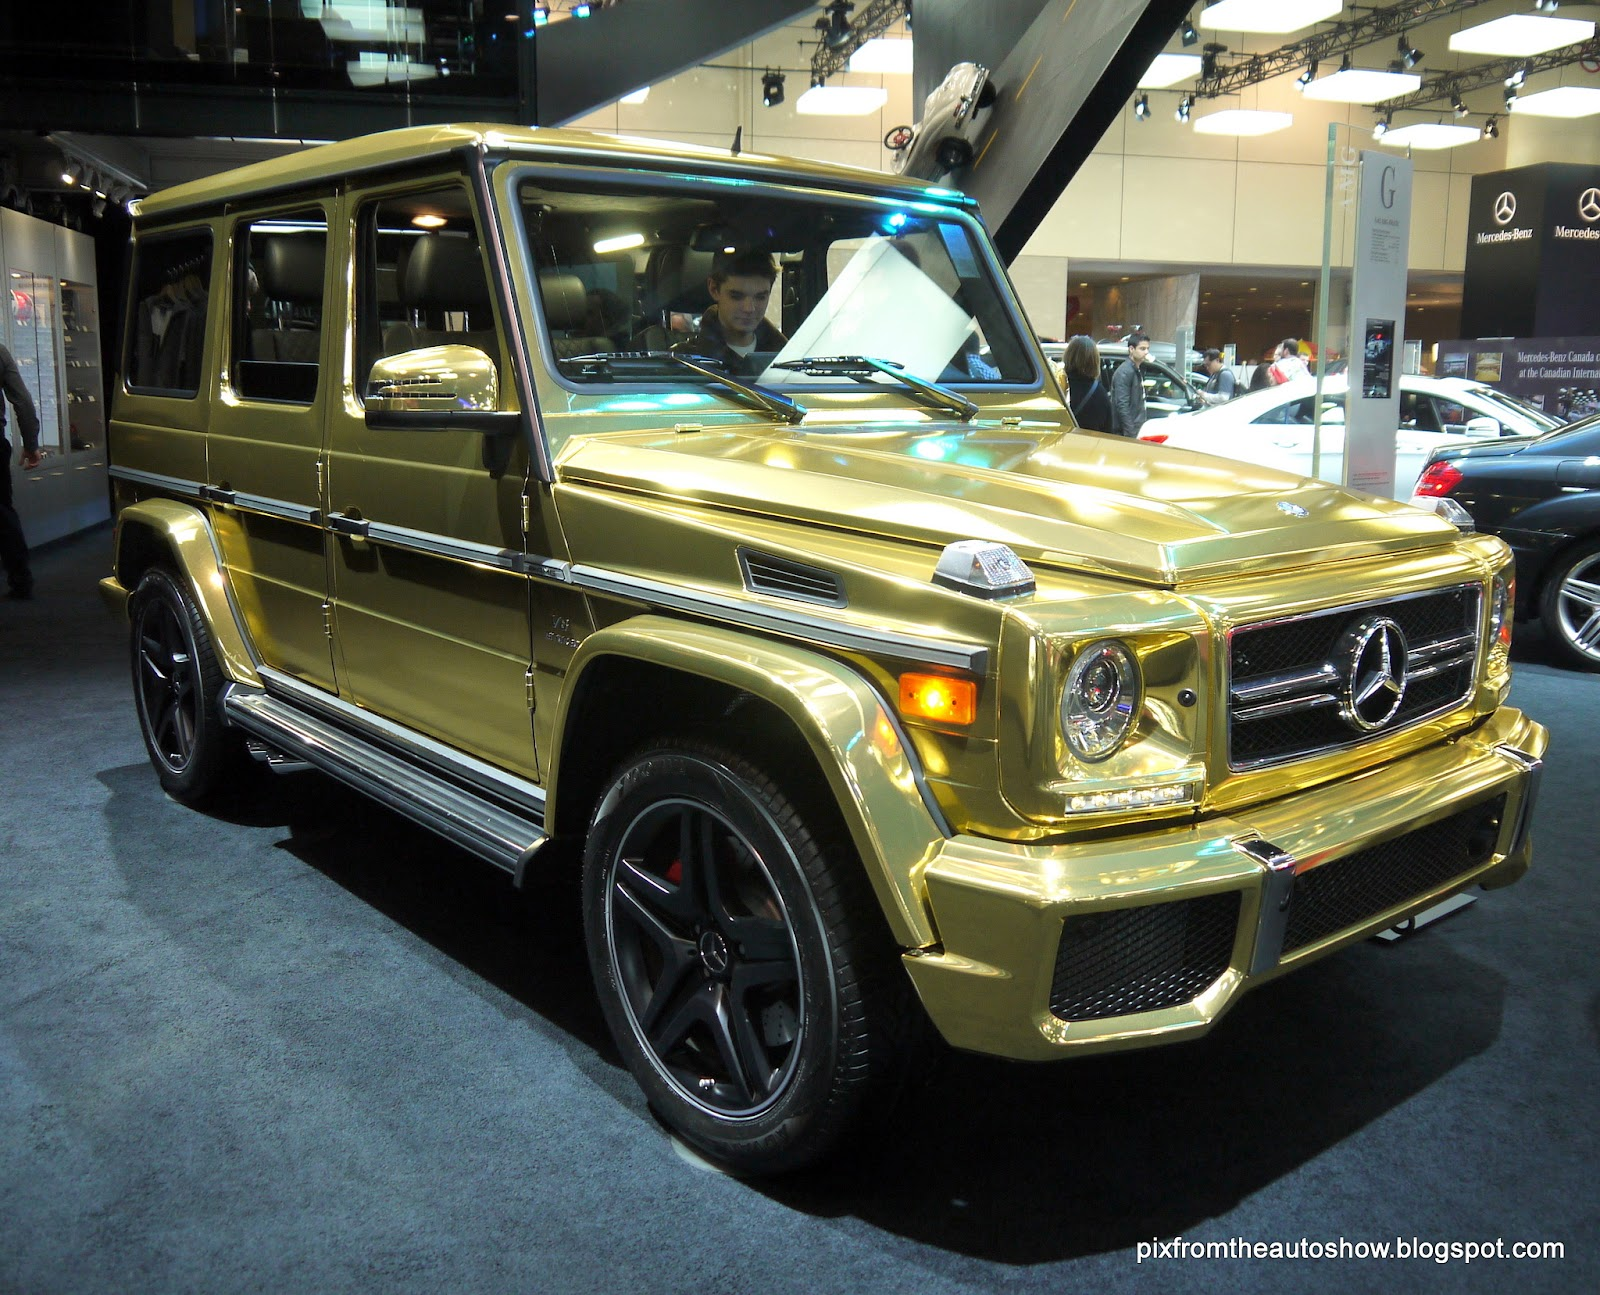 latest cars from around the world.: mercedes benz g class suv